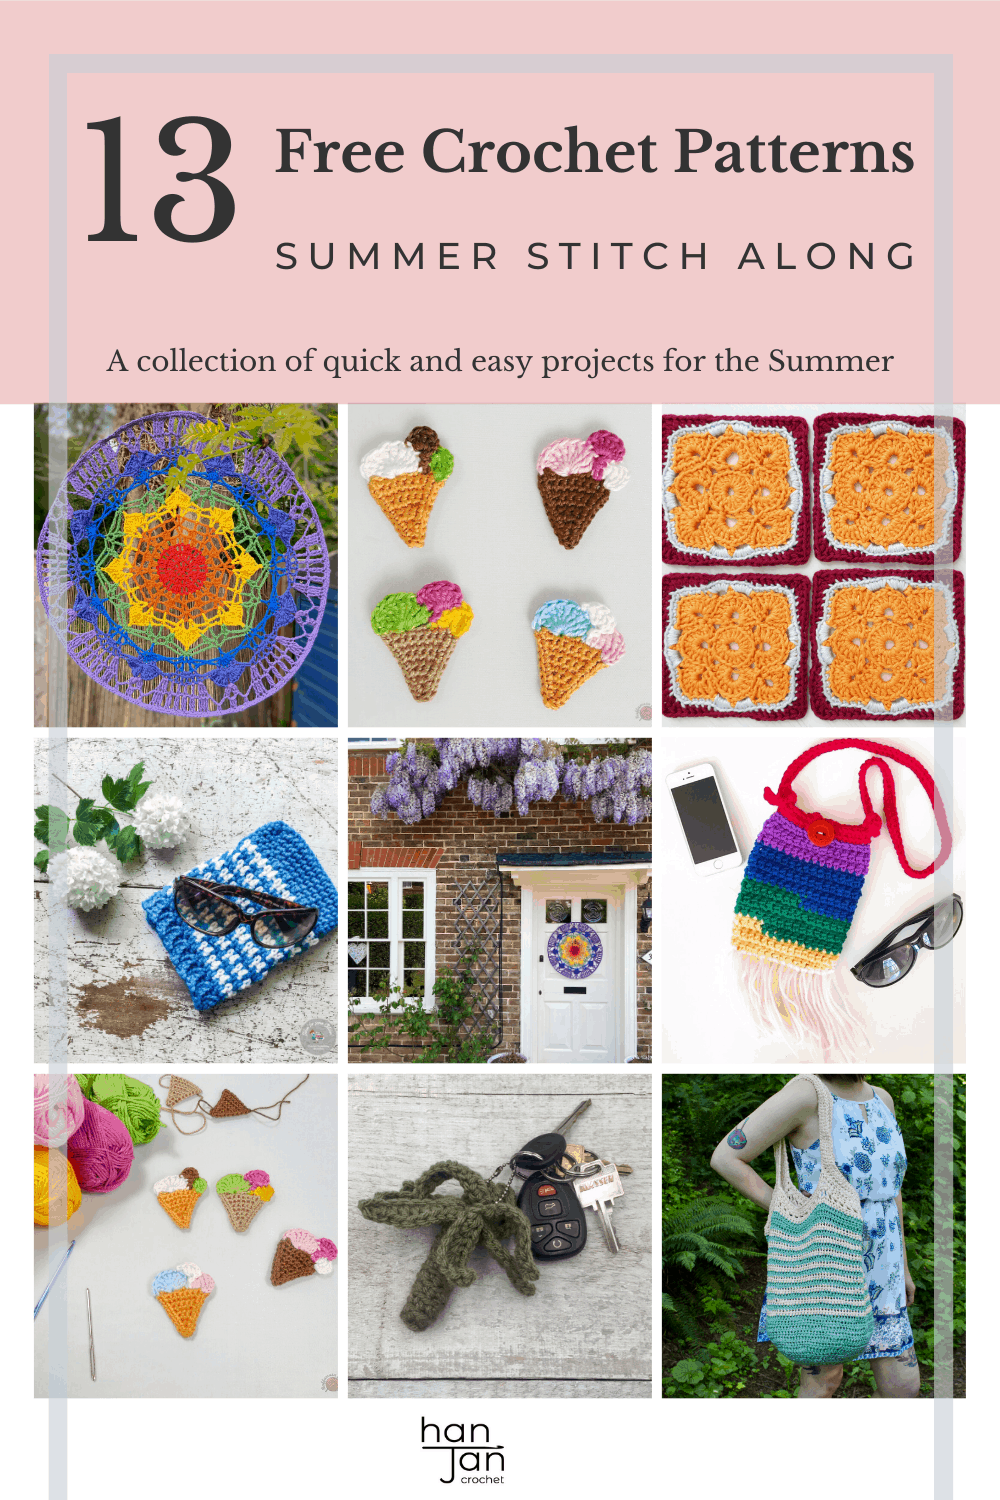 Free patterns to crochet for summer in the 3rd week of the Summer Stitch Along. From bags to shawls to home decor, we've got everything covered. Beginner friendly, bright and fun crochet inspiration